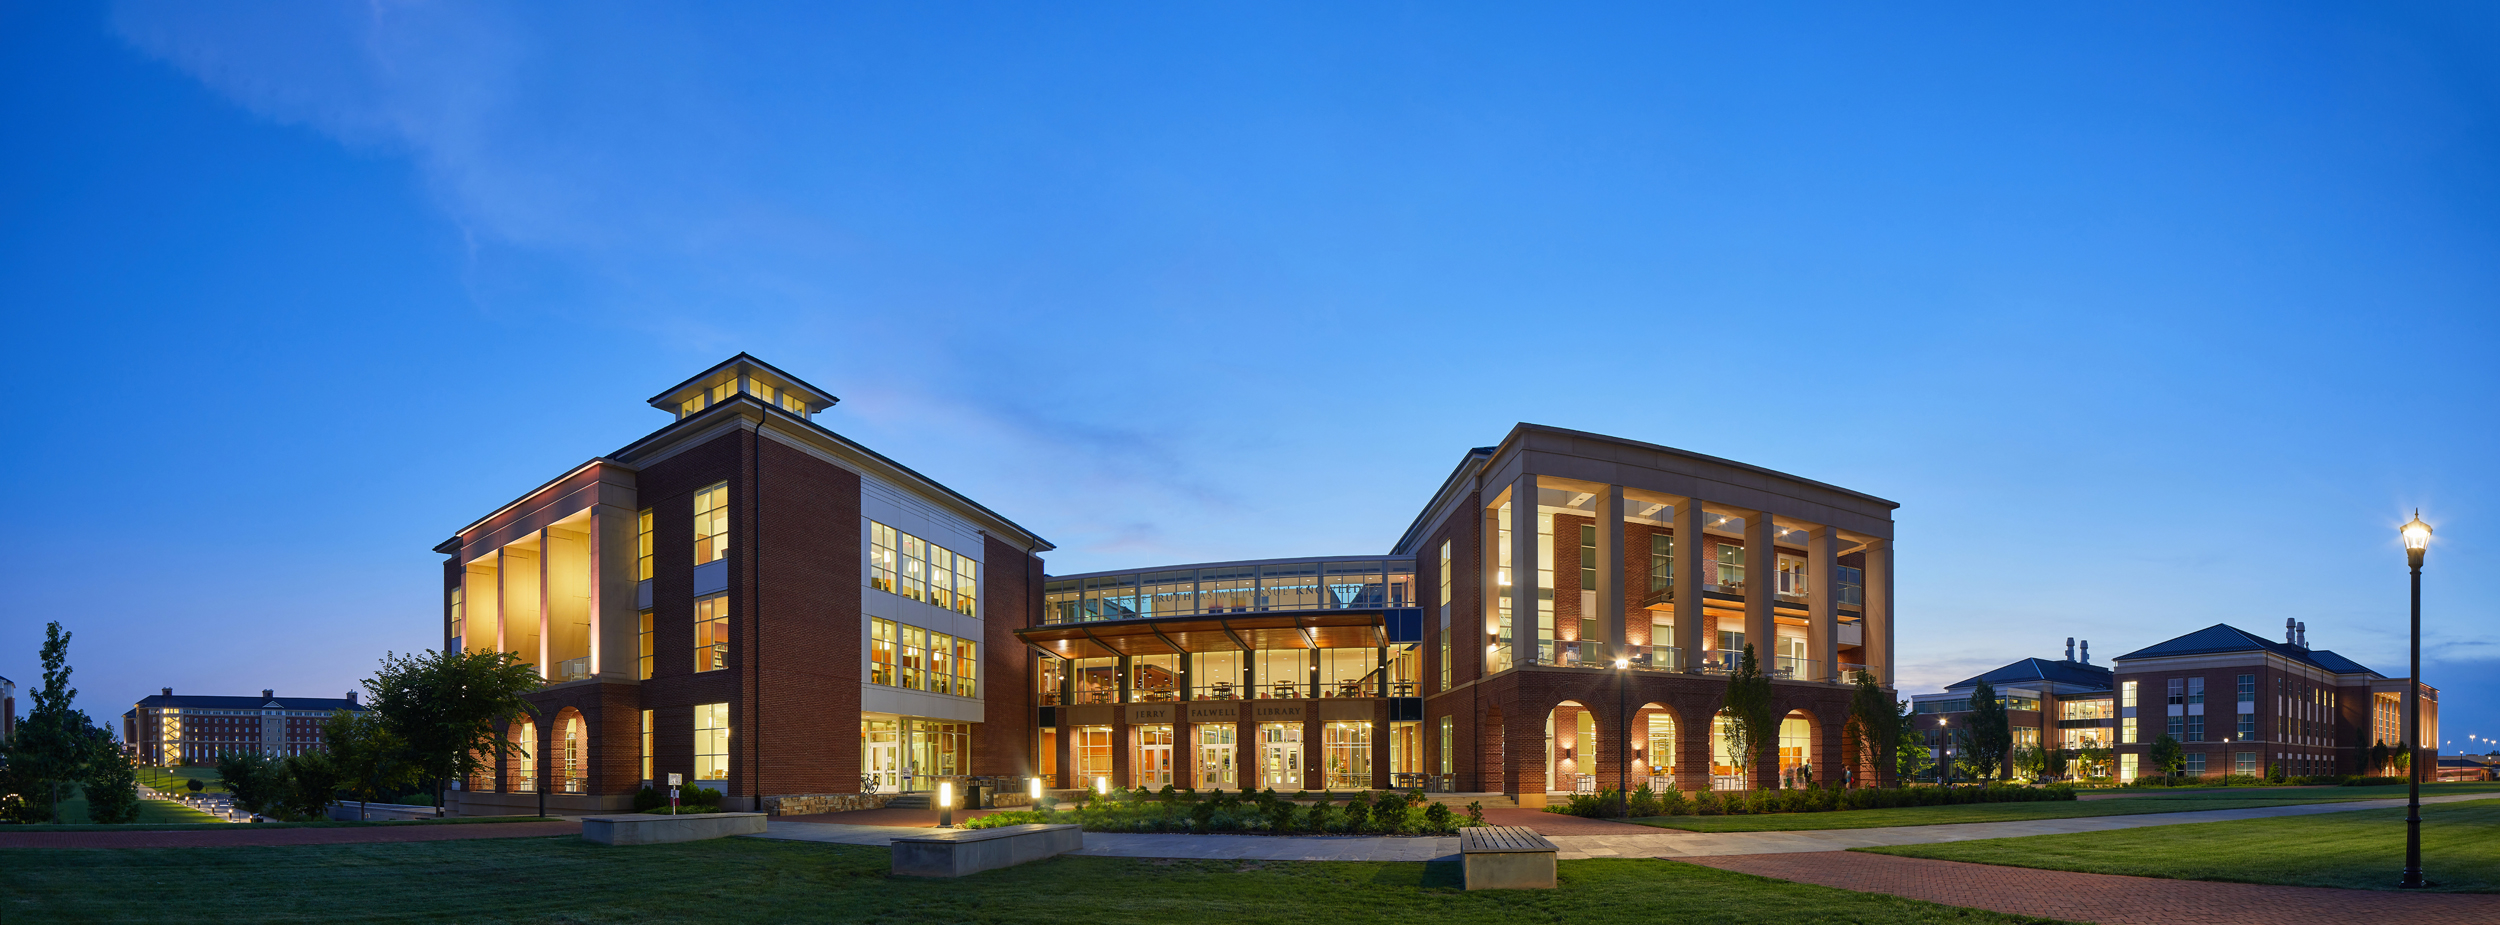 Photo of the Jerry Falwell Library